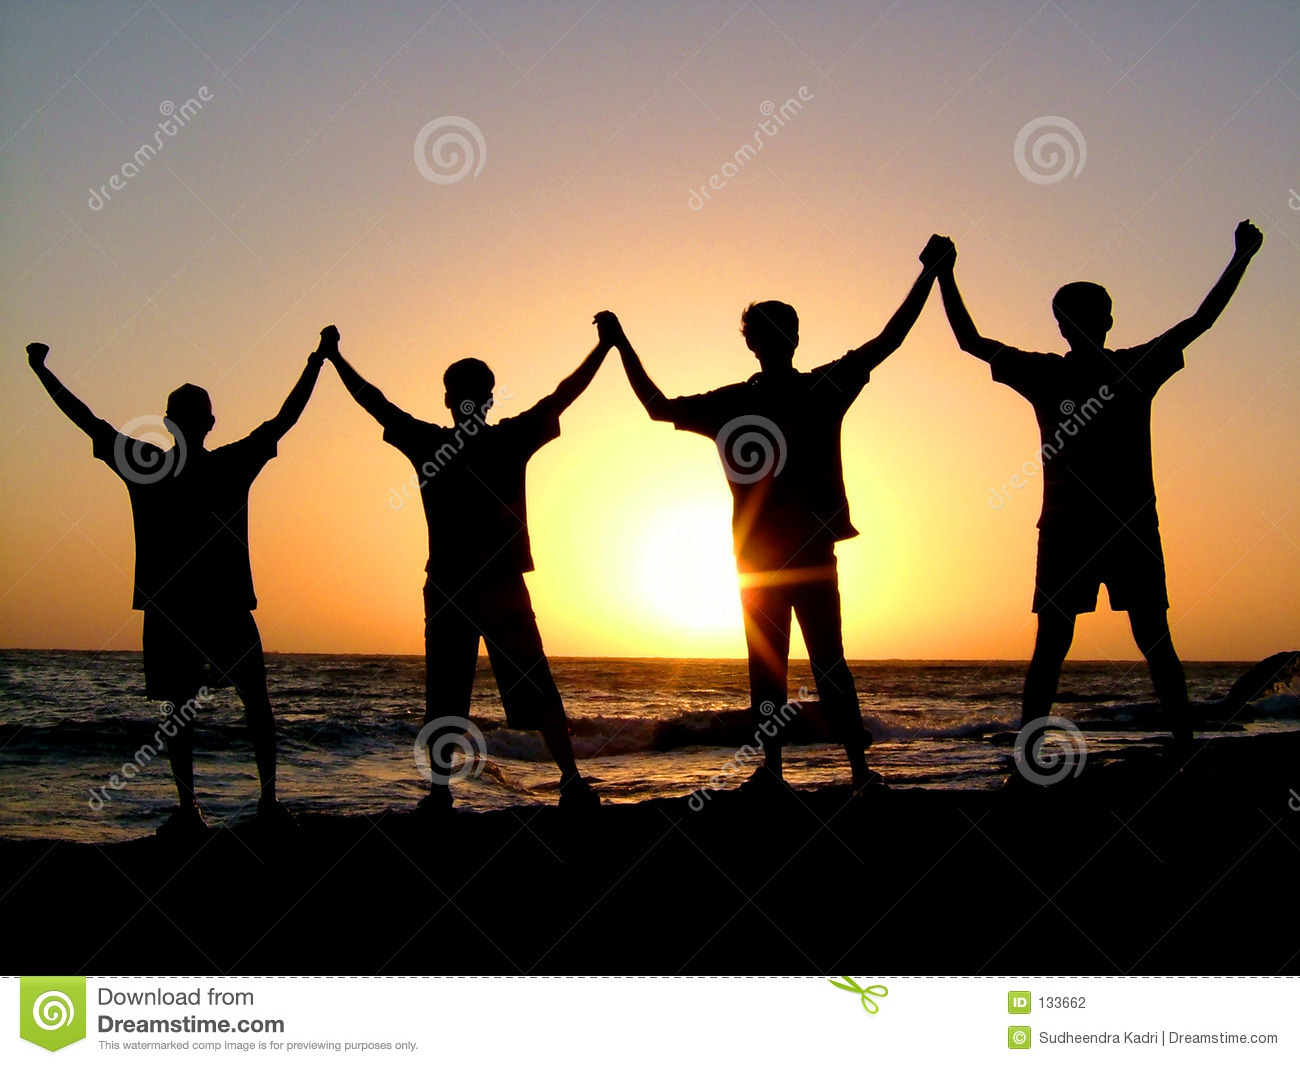 Divided We Fall Wallpaper United We Stand Stock Photo Image Of Beach Happiness